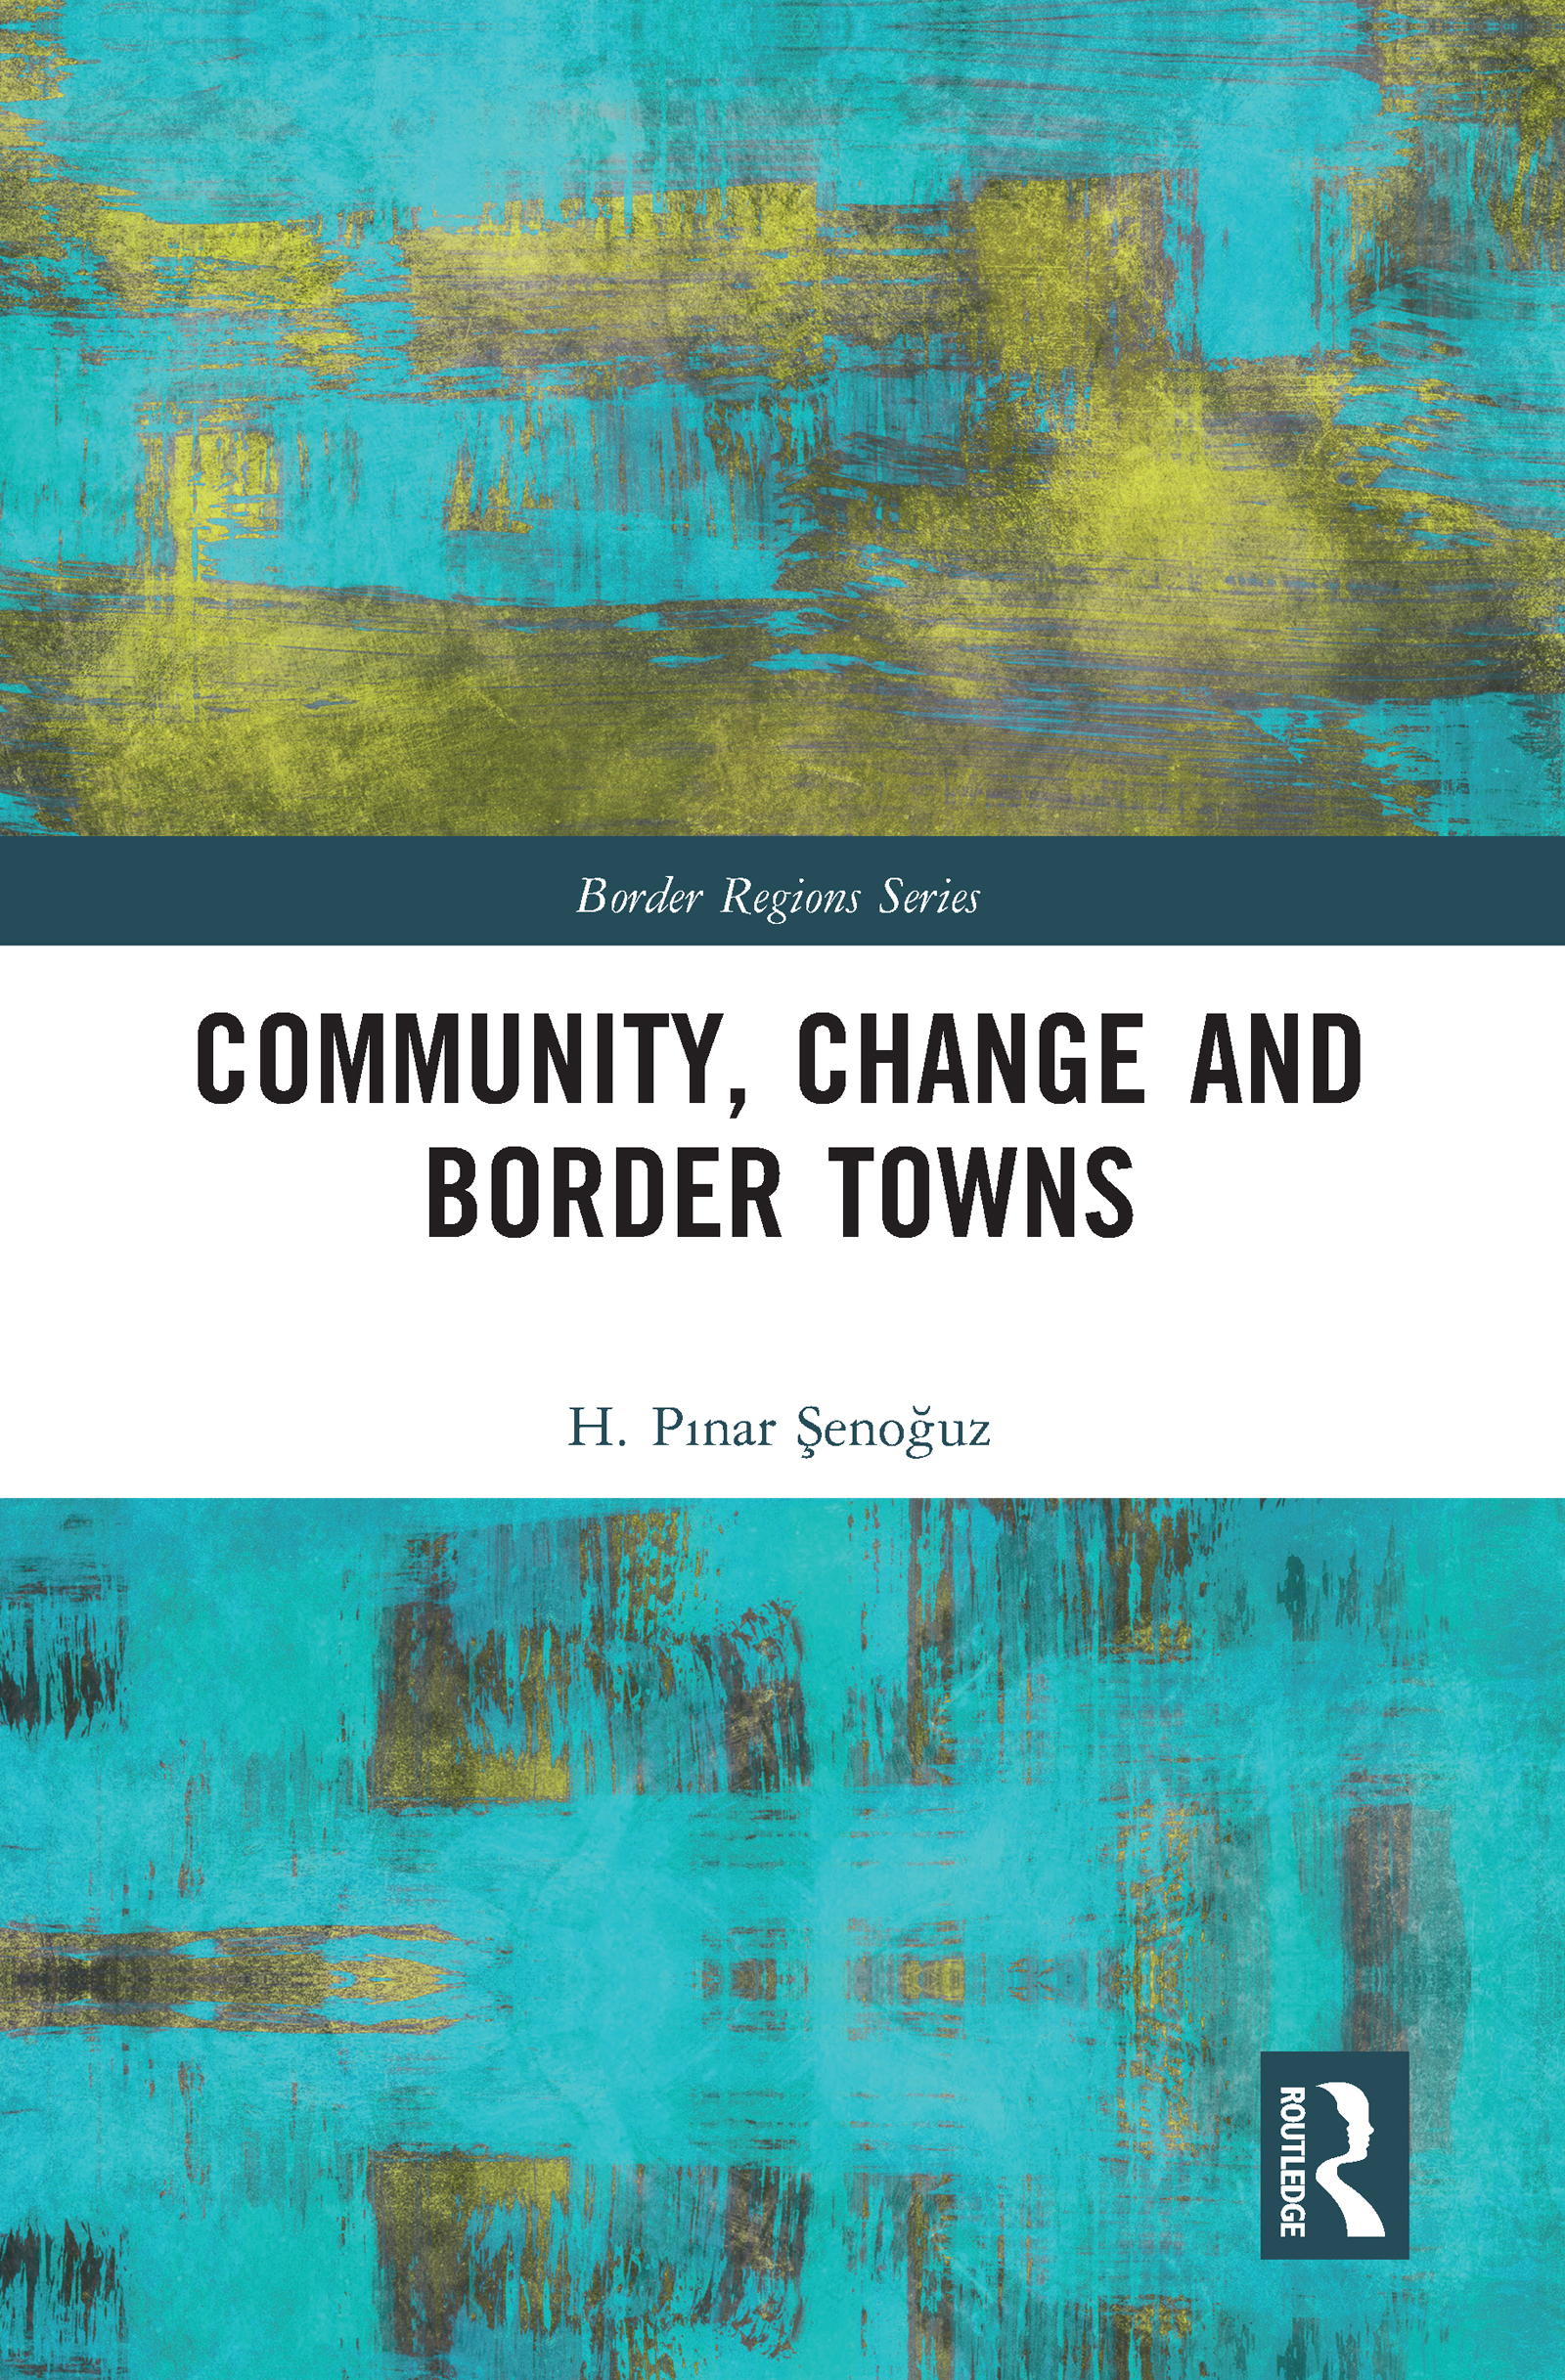 Community, Change and Border Towns